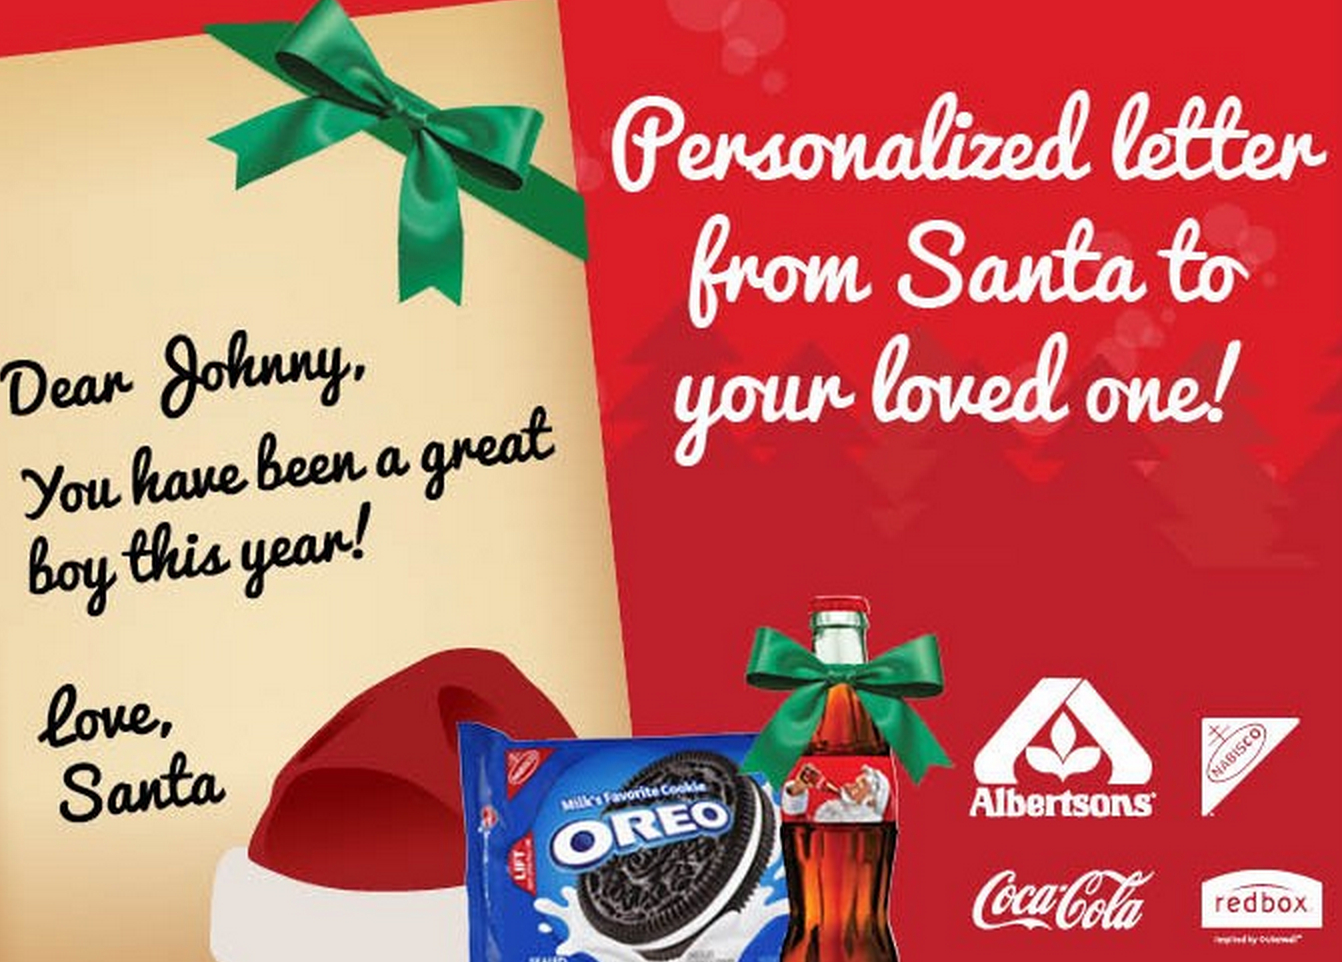 Free Personalized Letter From Santa Claus + Redbox Offer & Printable - Free Printable Coupons For Coca Cola Products